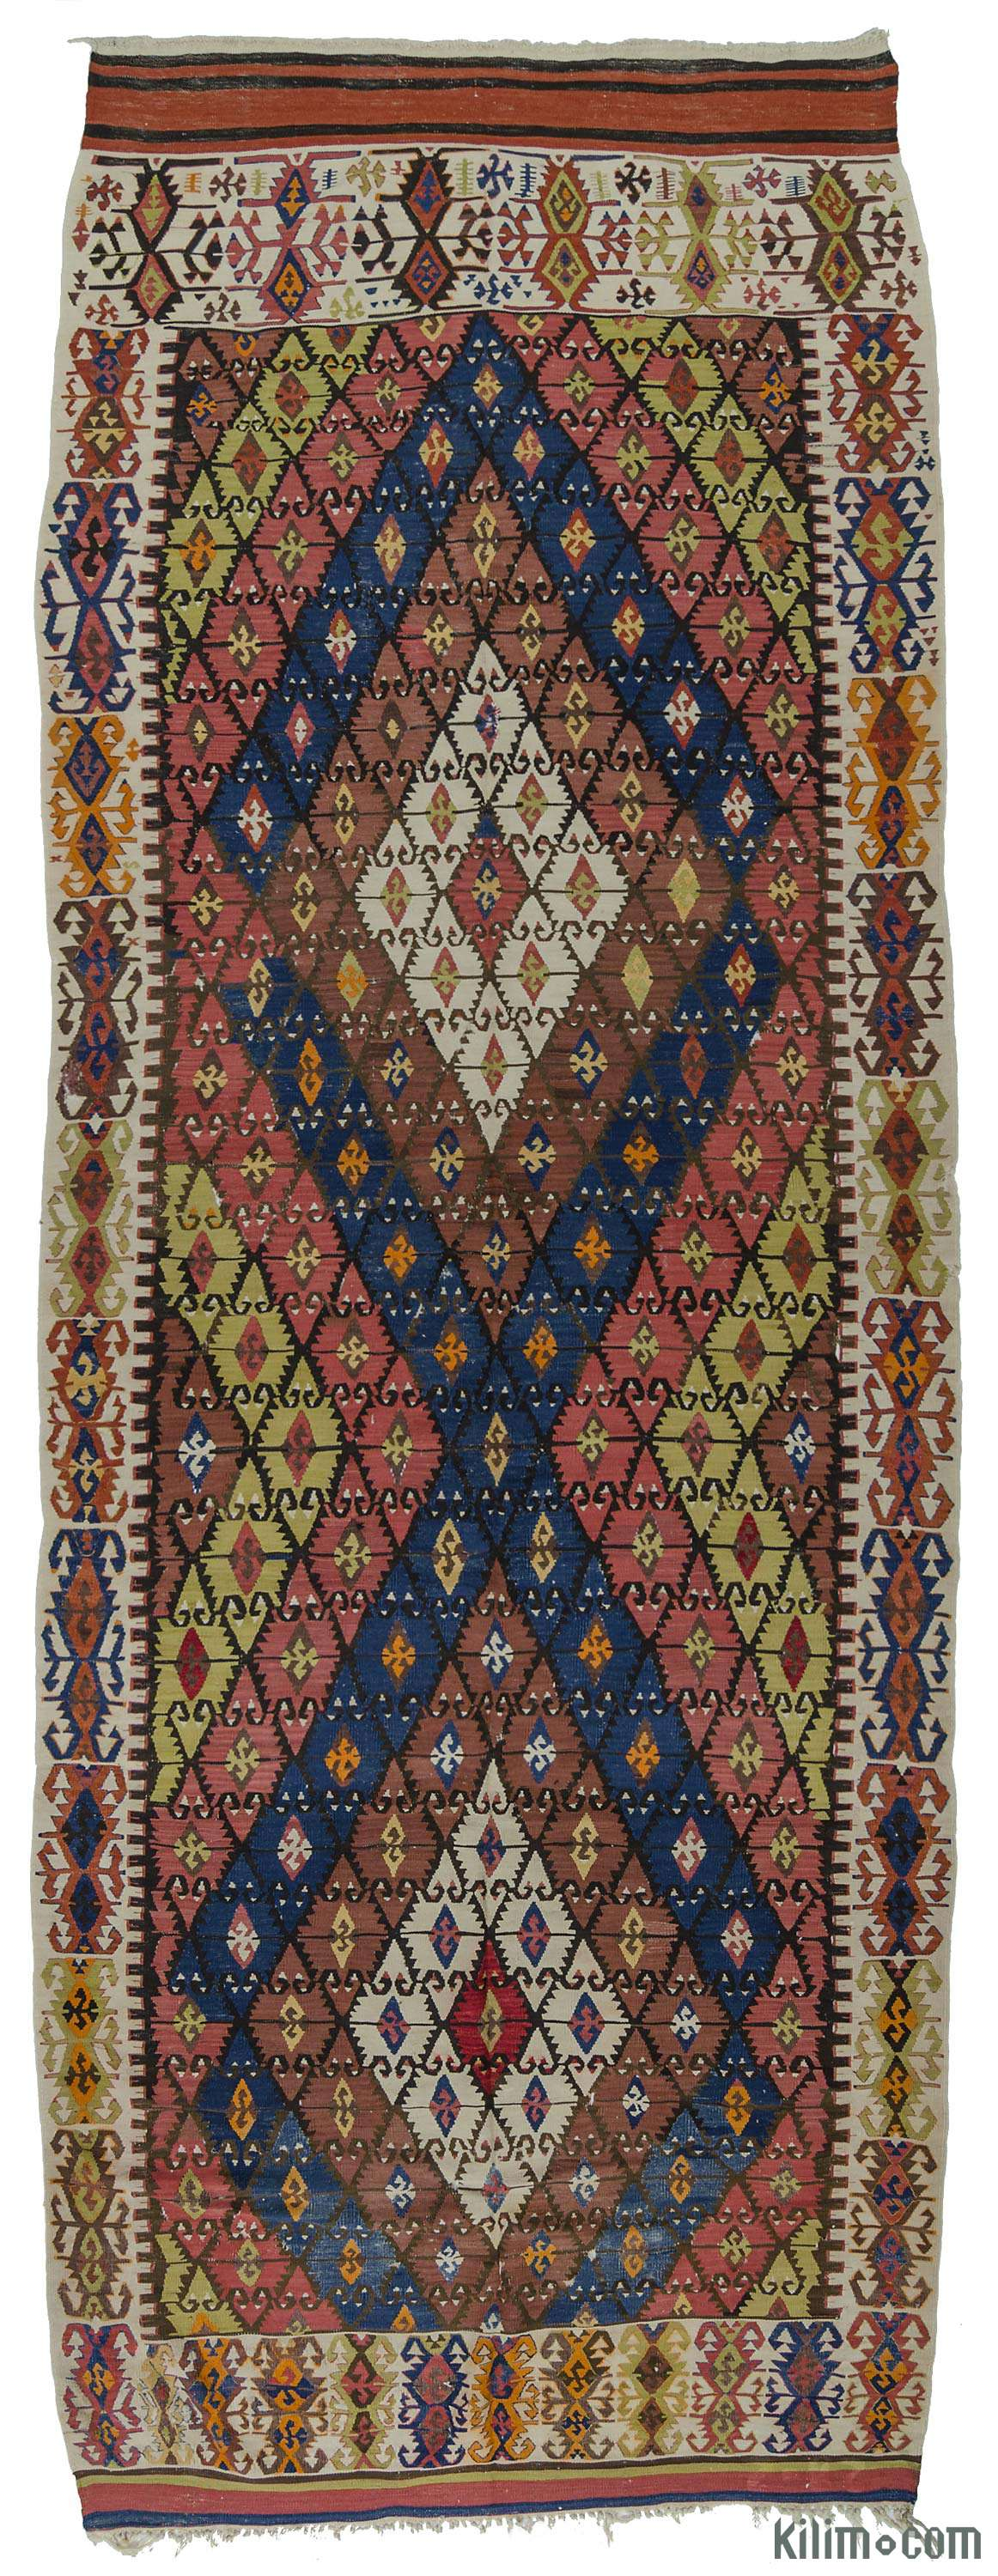 K0009715 Multicolor Blue Antique Sivrihisar Kilim Rug